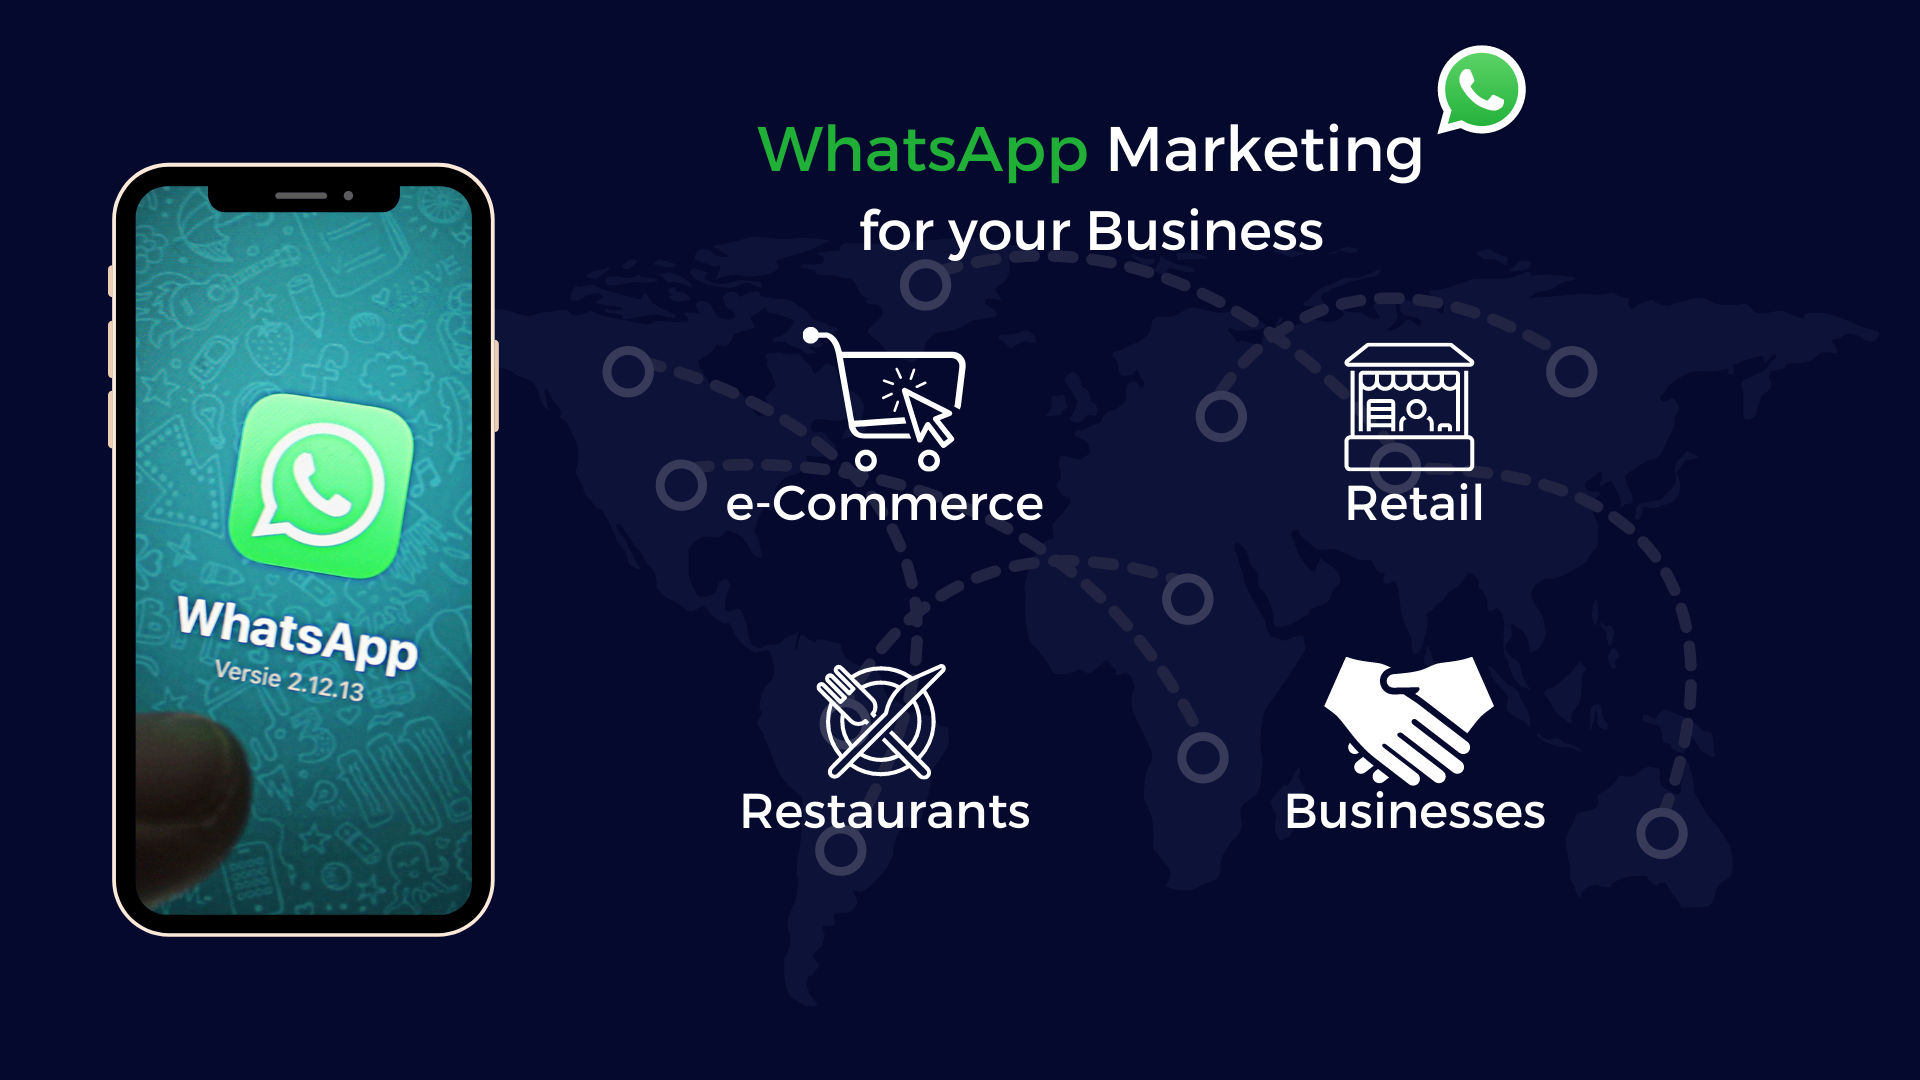 Bulk whatsapp marketing services and solutions